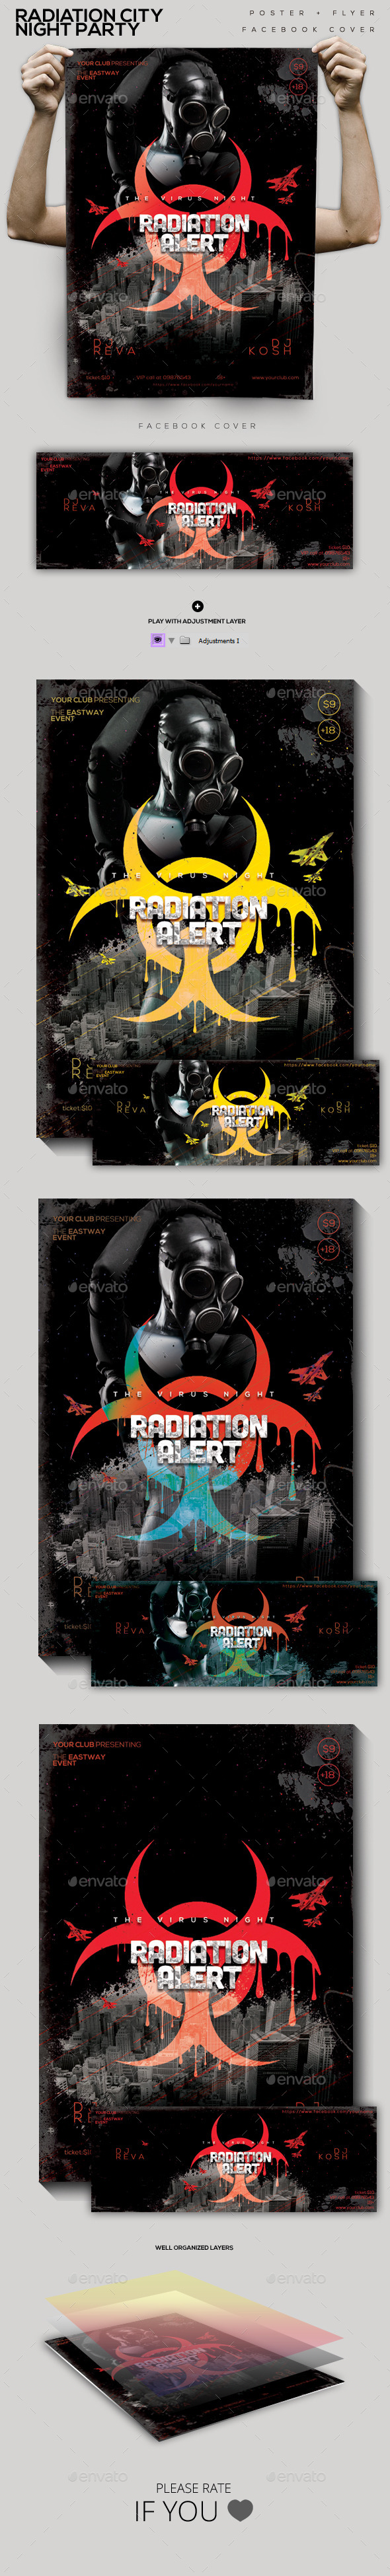 Radiation City Night Party Flyer/Poster/Facebook C - Clubs & Parties Events